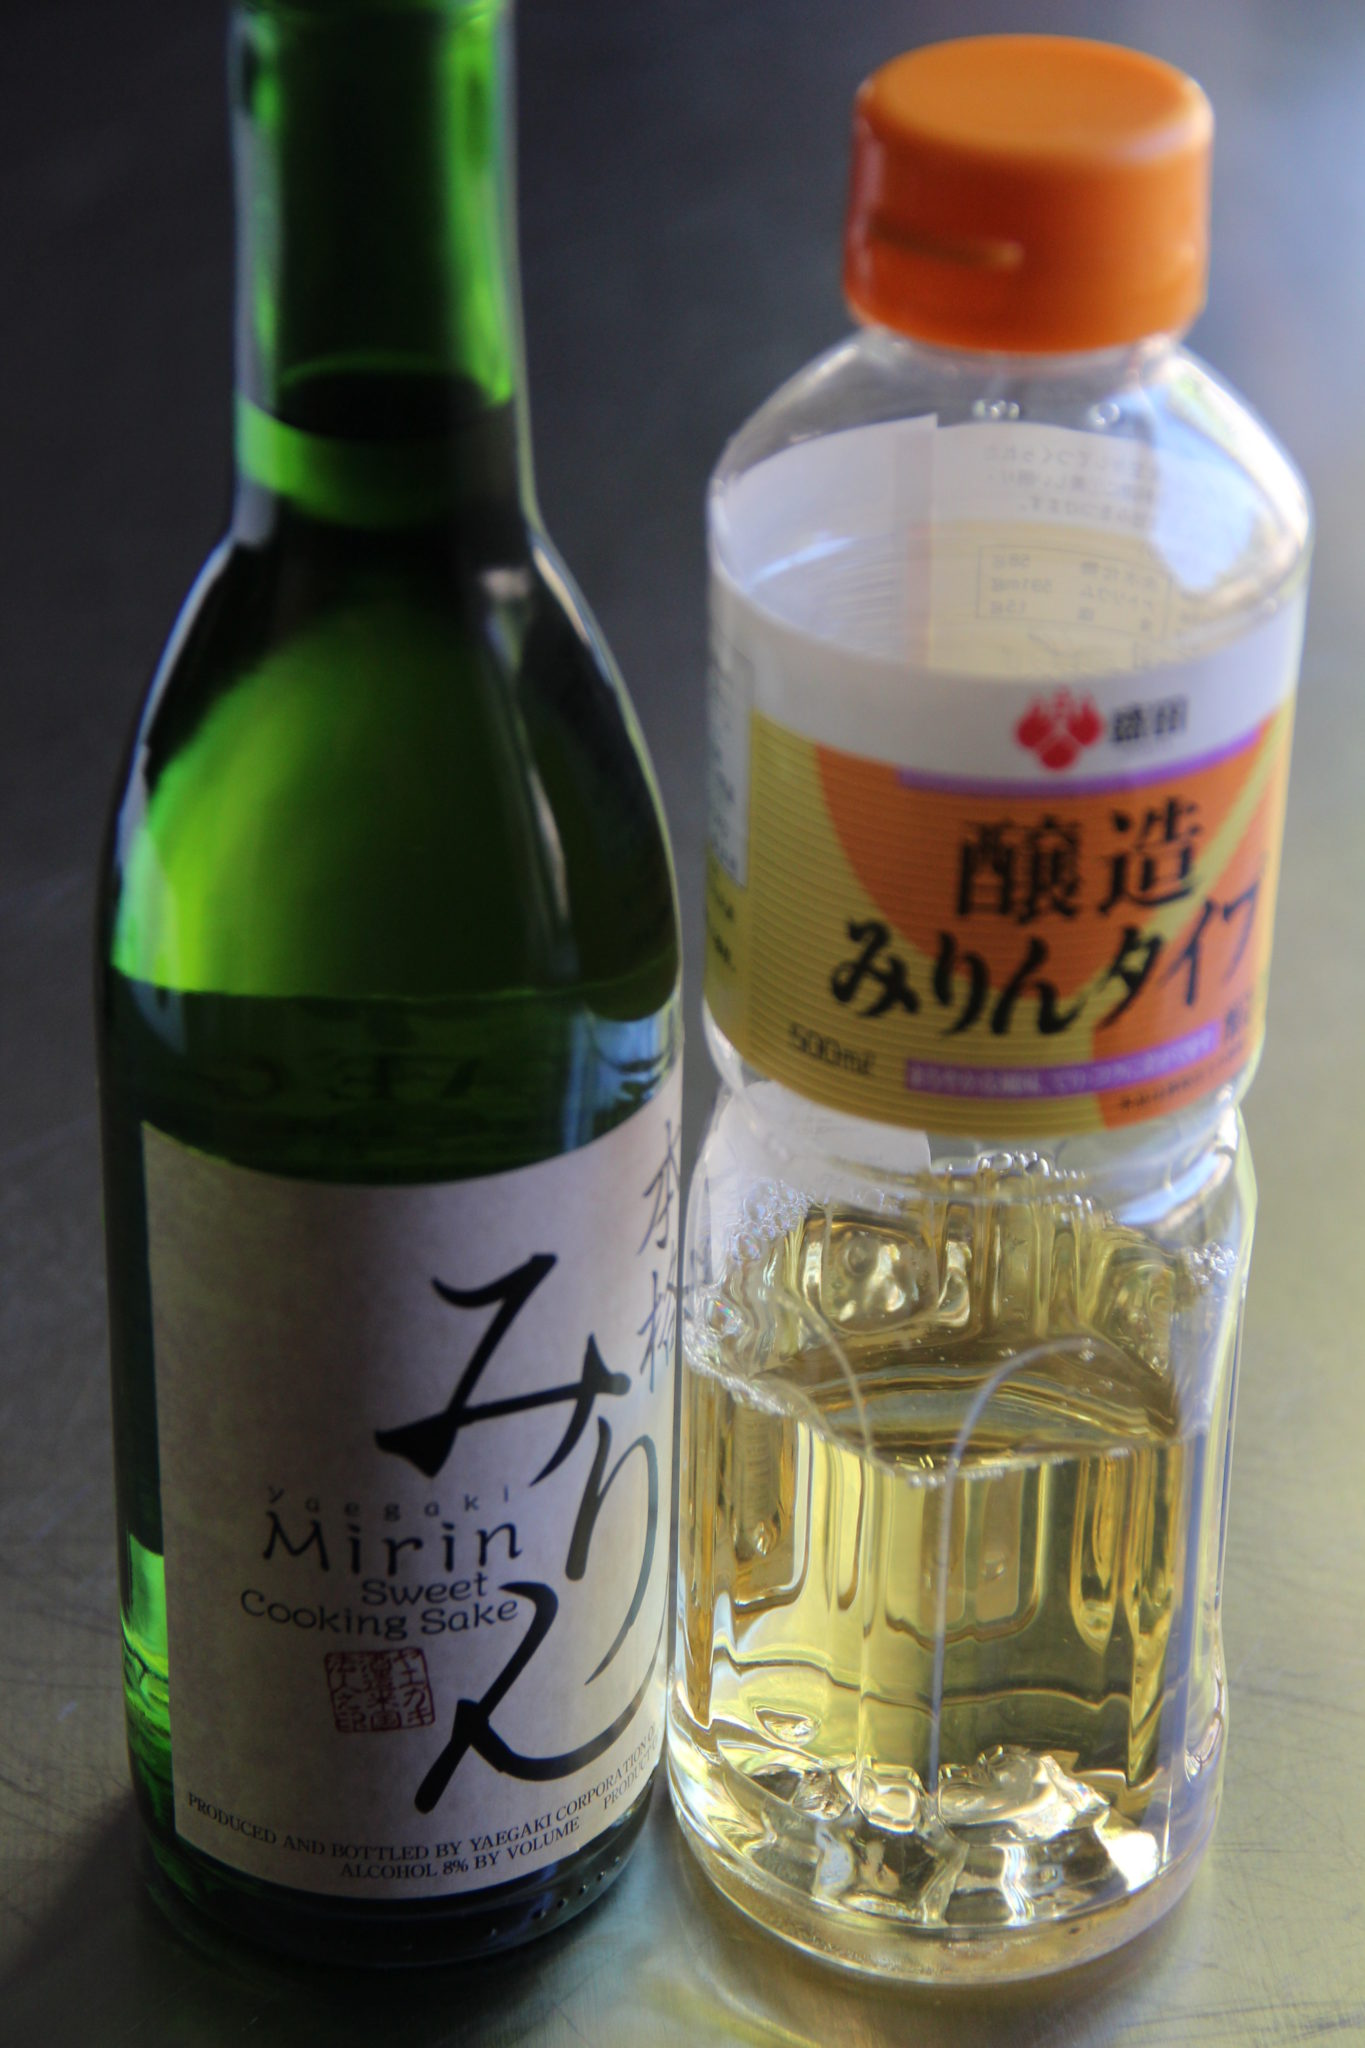 Mirin Is Sweet Rice Wine Widely In Anese Cooking It Mainly For But Some Are Good Enough To Drink Made From Steamed Mochi